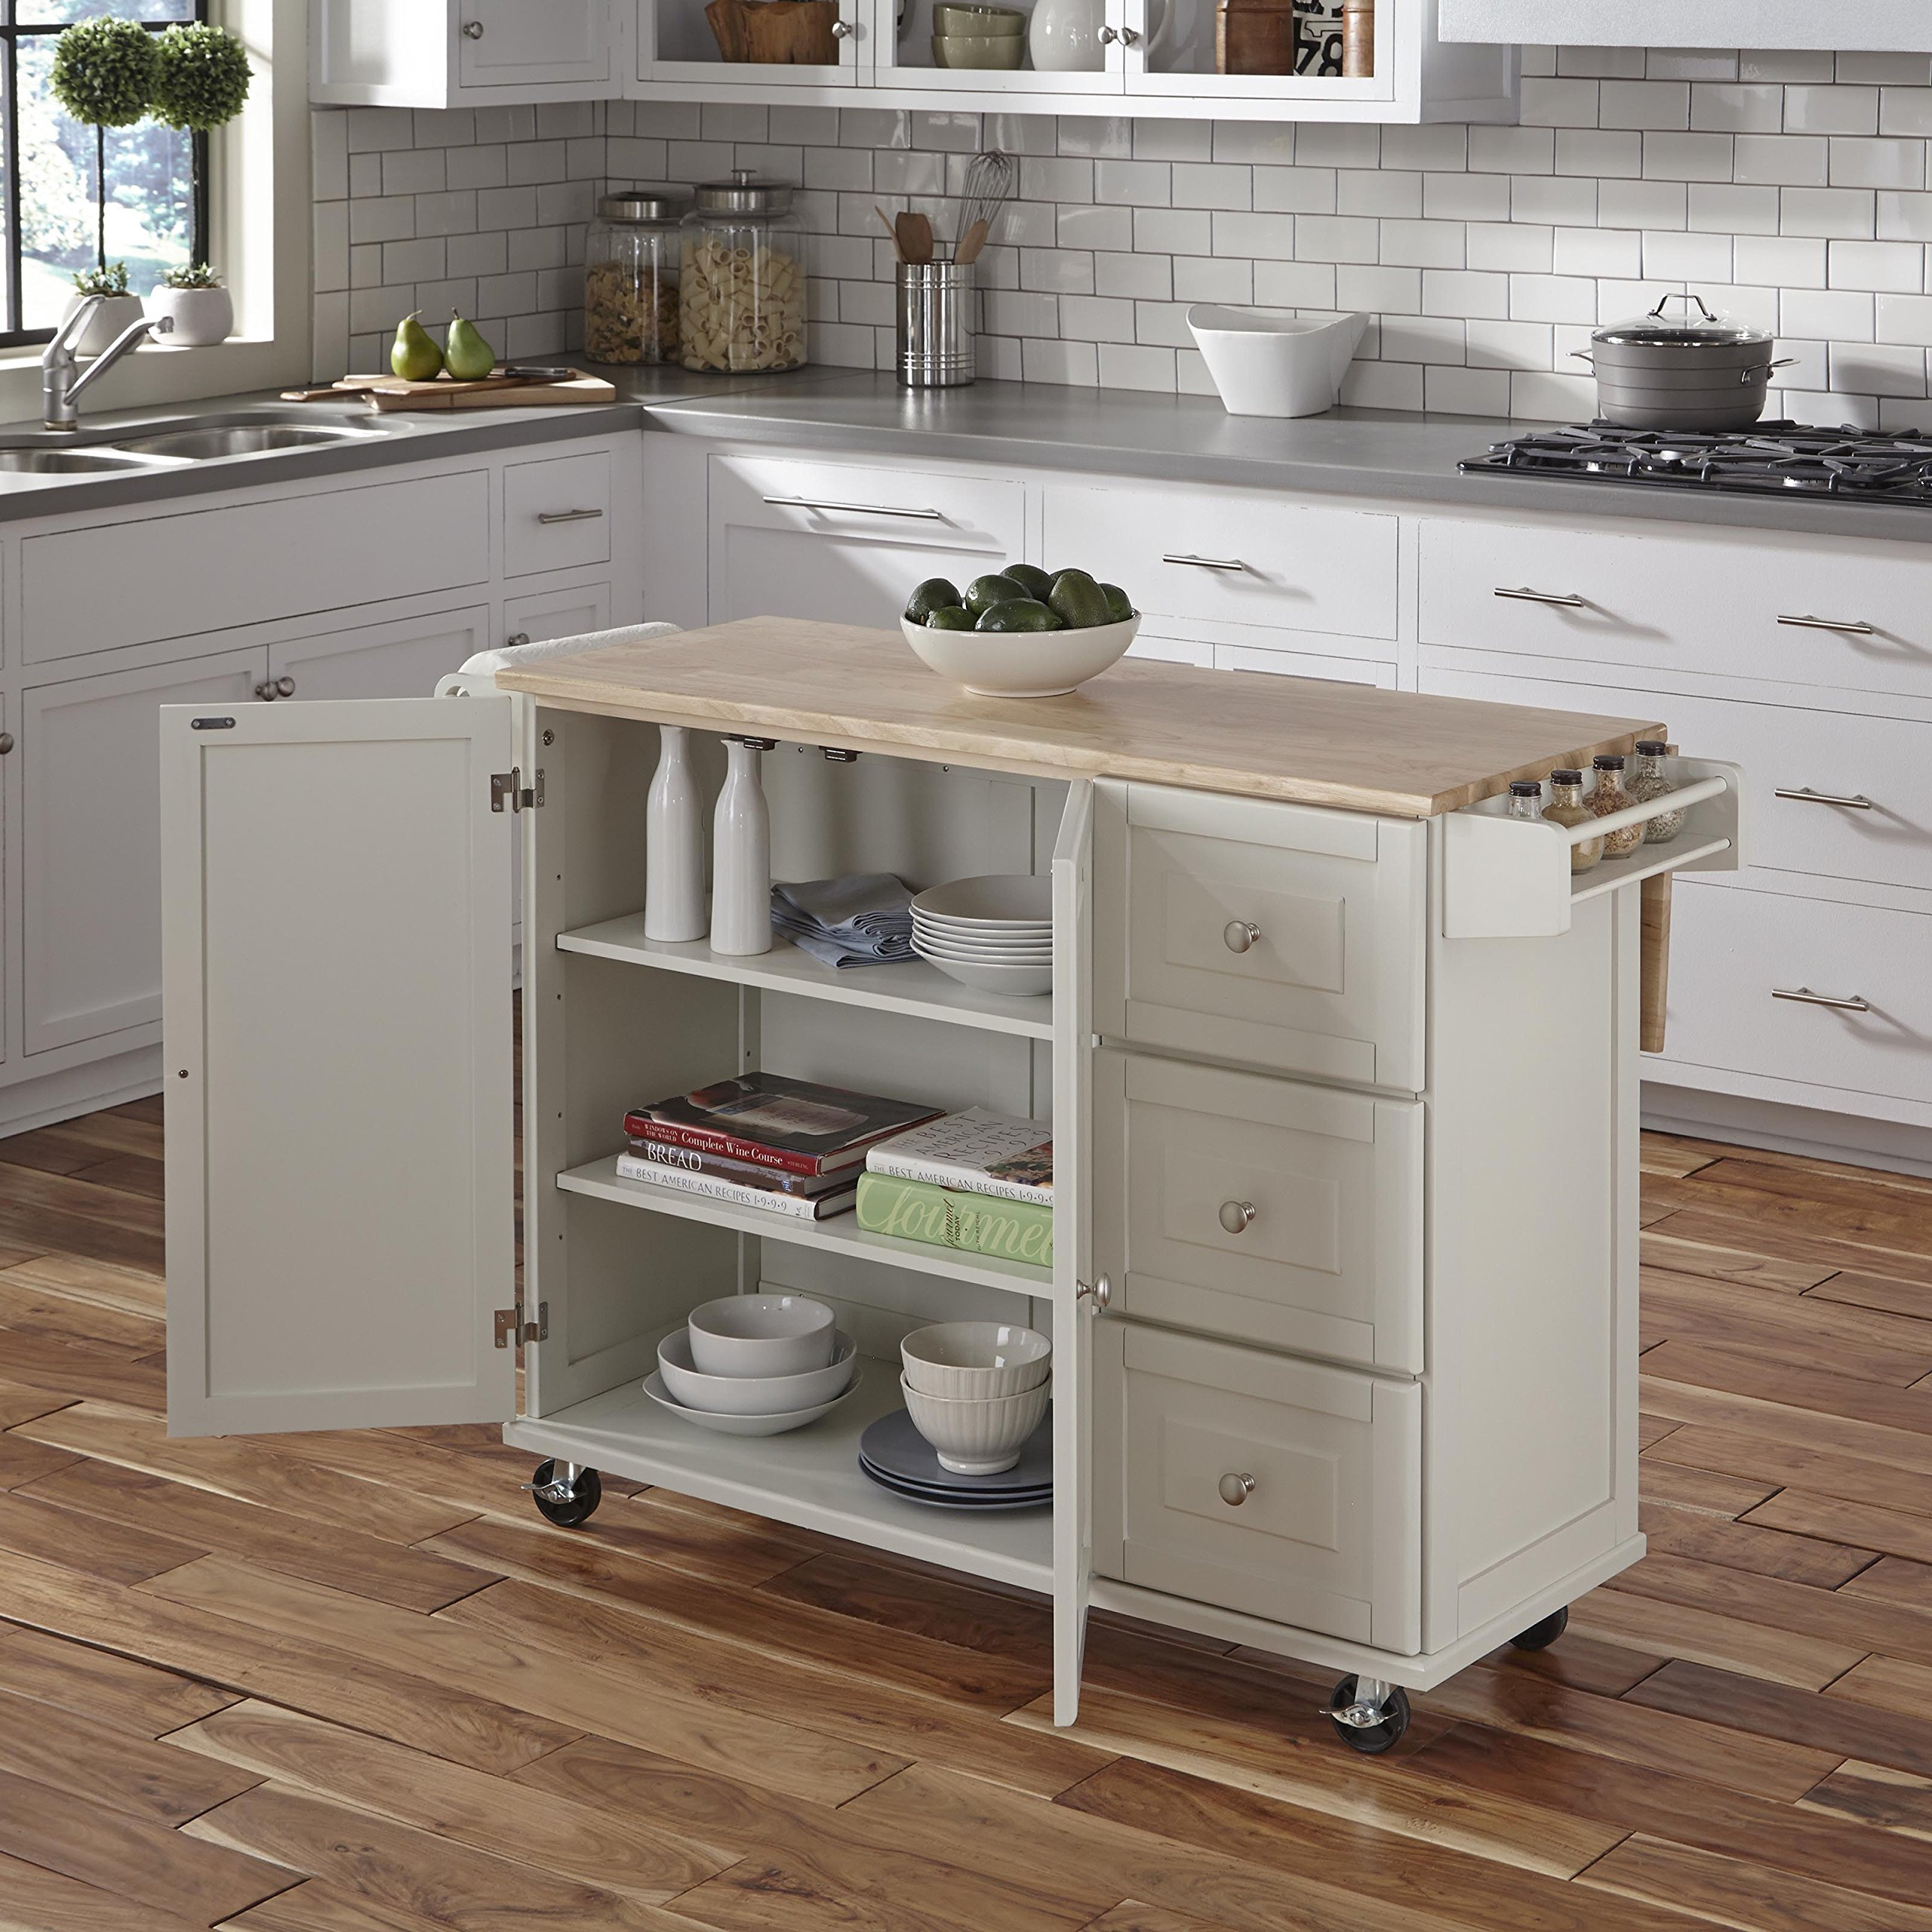 Home Styles 4511-95 Liberty Kitchen Cart with Wood Top, White by Home Styles (Image #5)